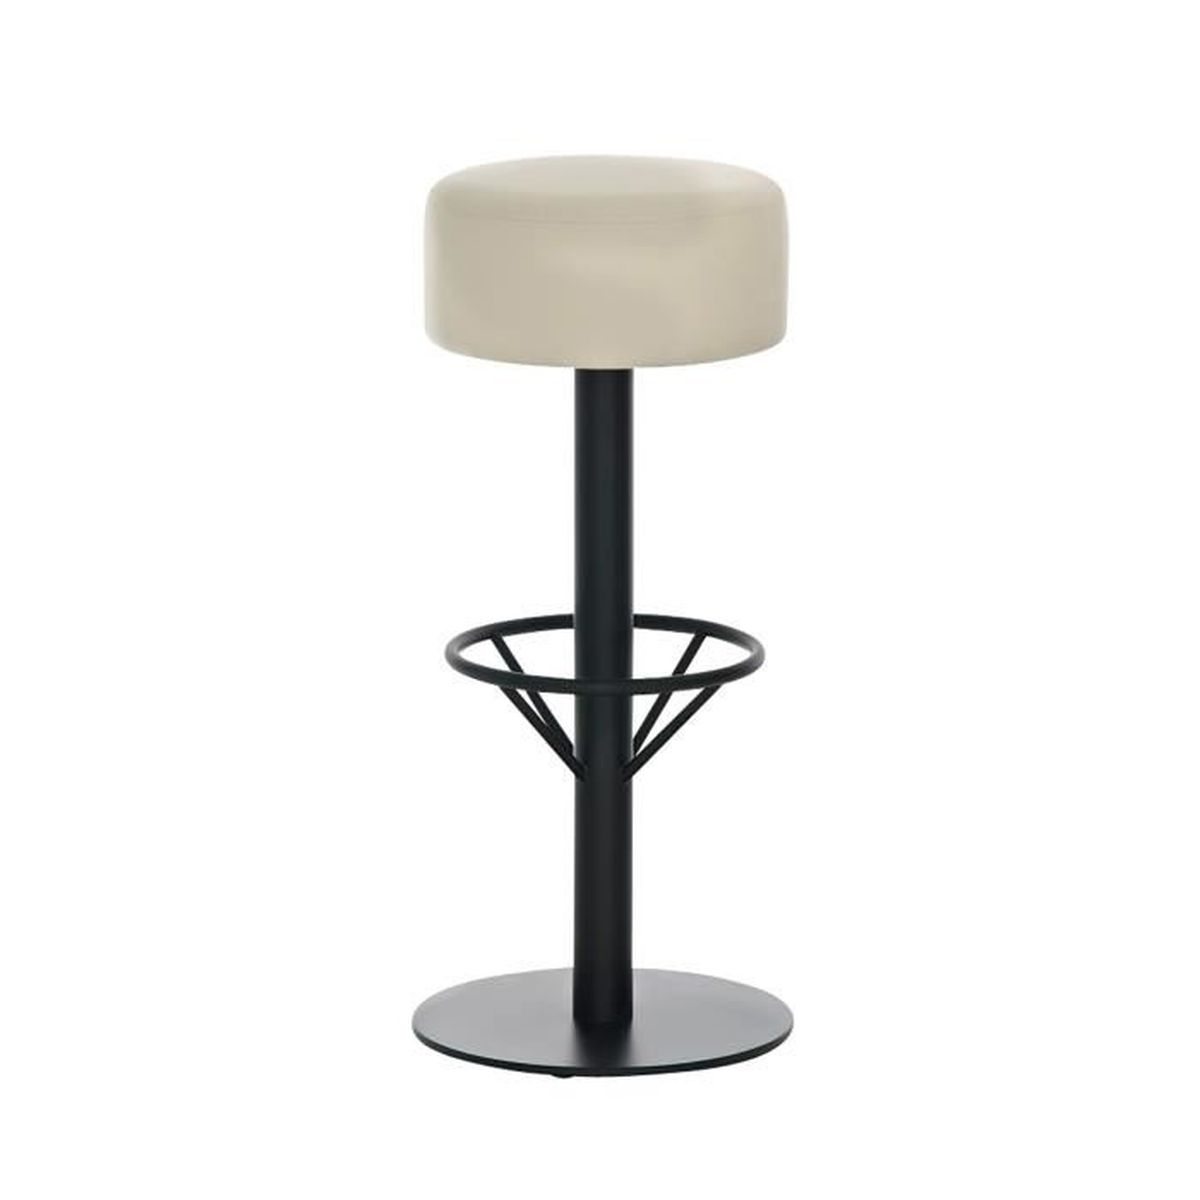 tabouret de bar en m tal avec si ge en similicuir cr me 85 x 38 x 38 cm achat vente. Black Bedroom Furniture Sets. Home Design Ideas